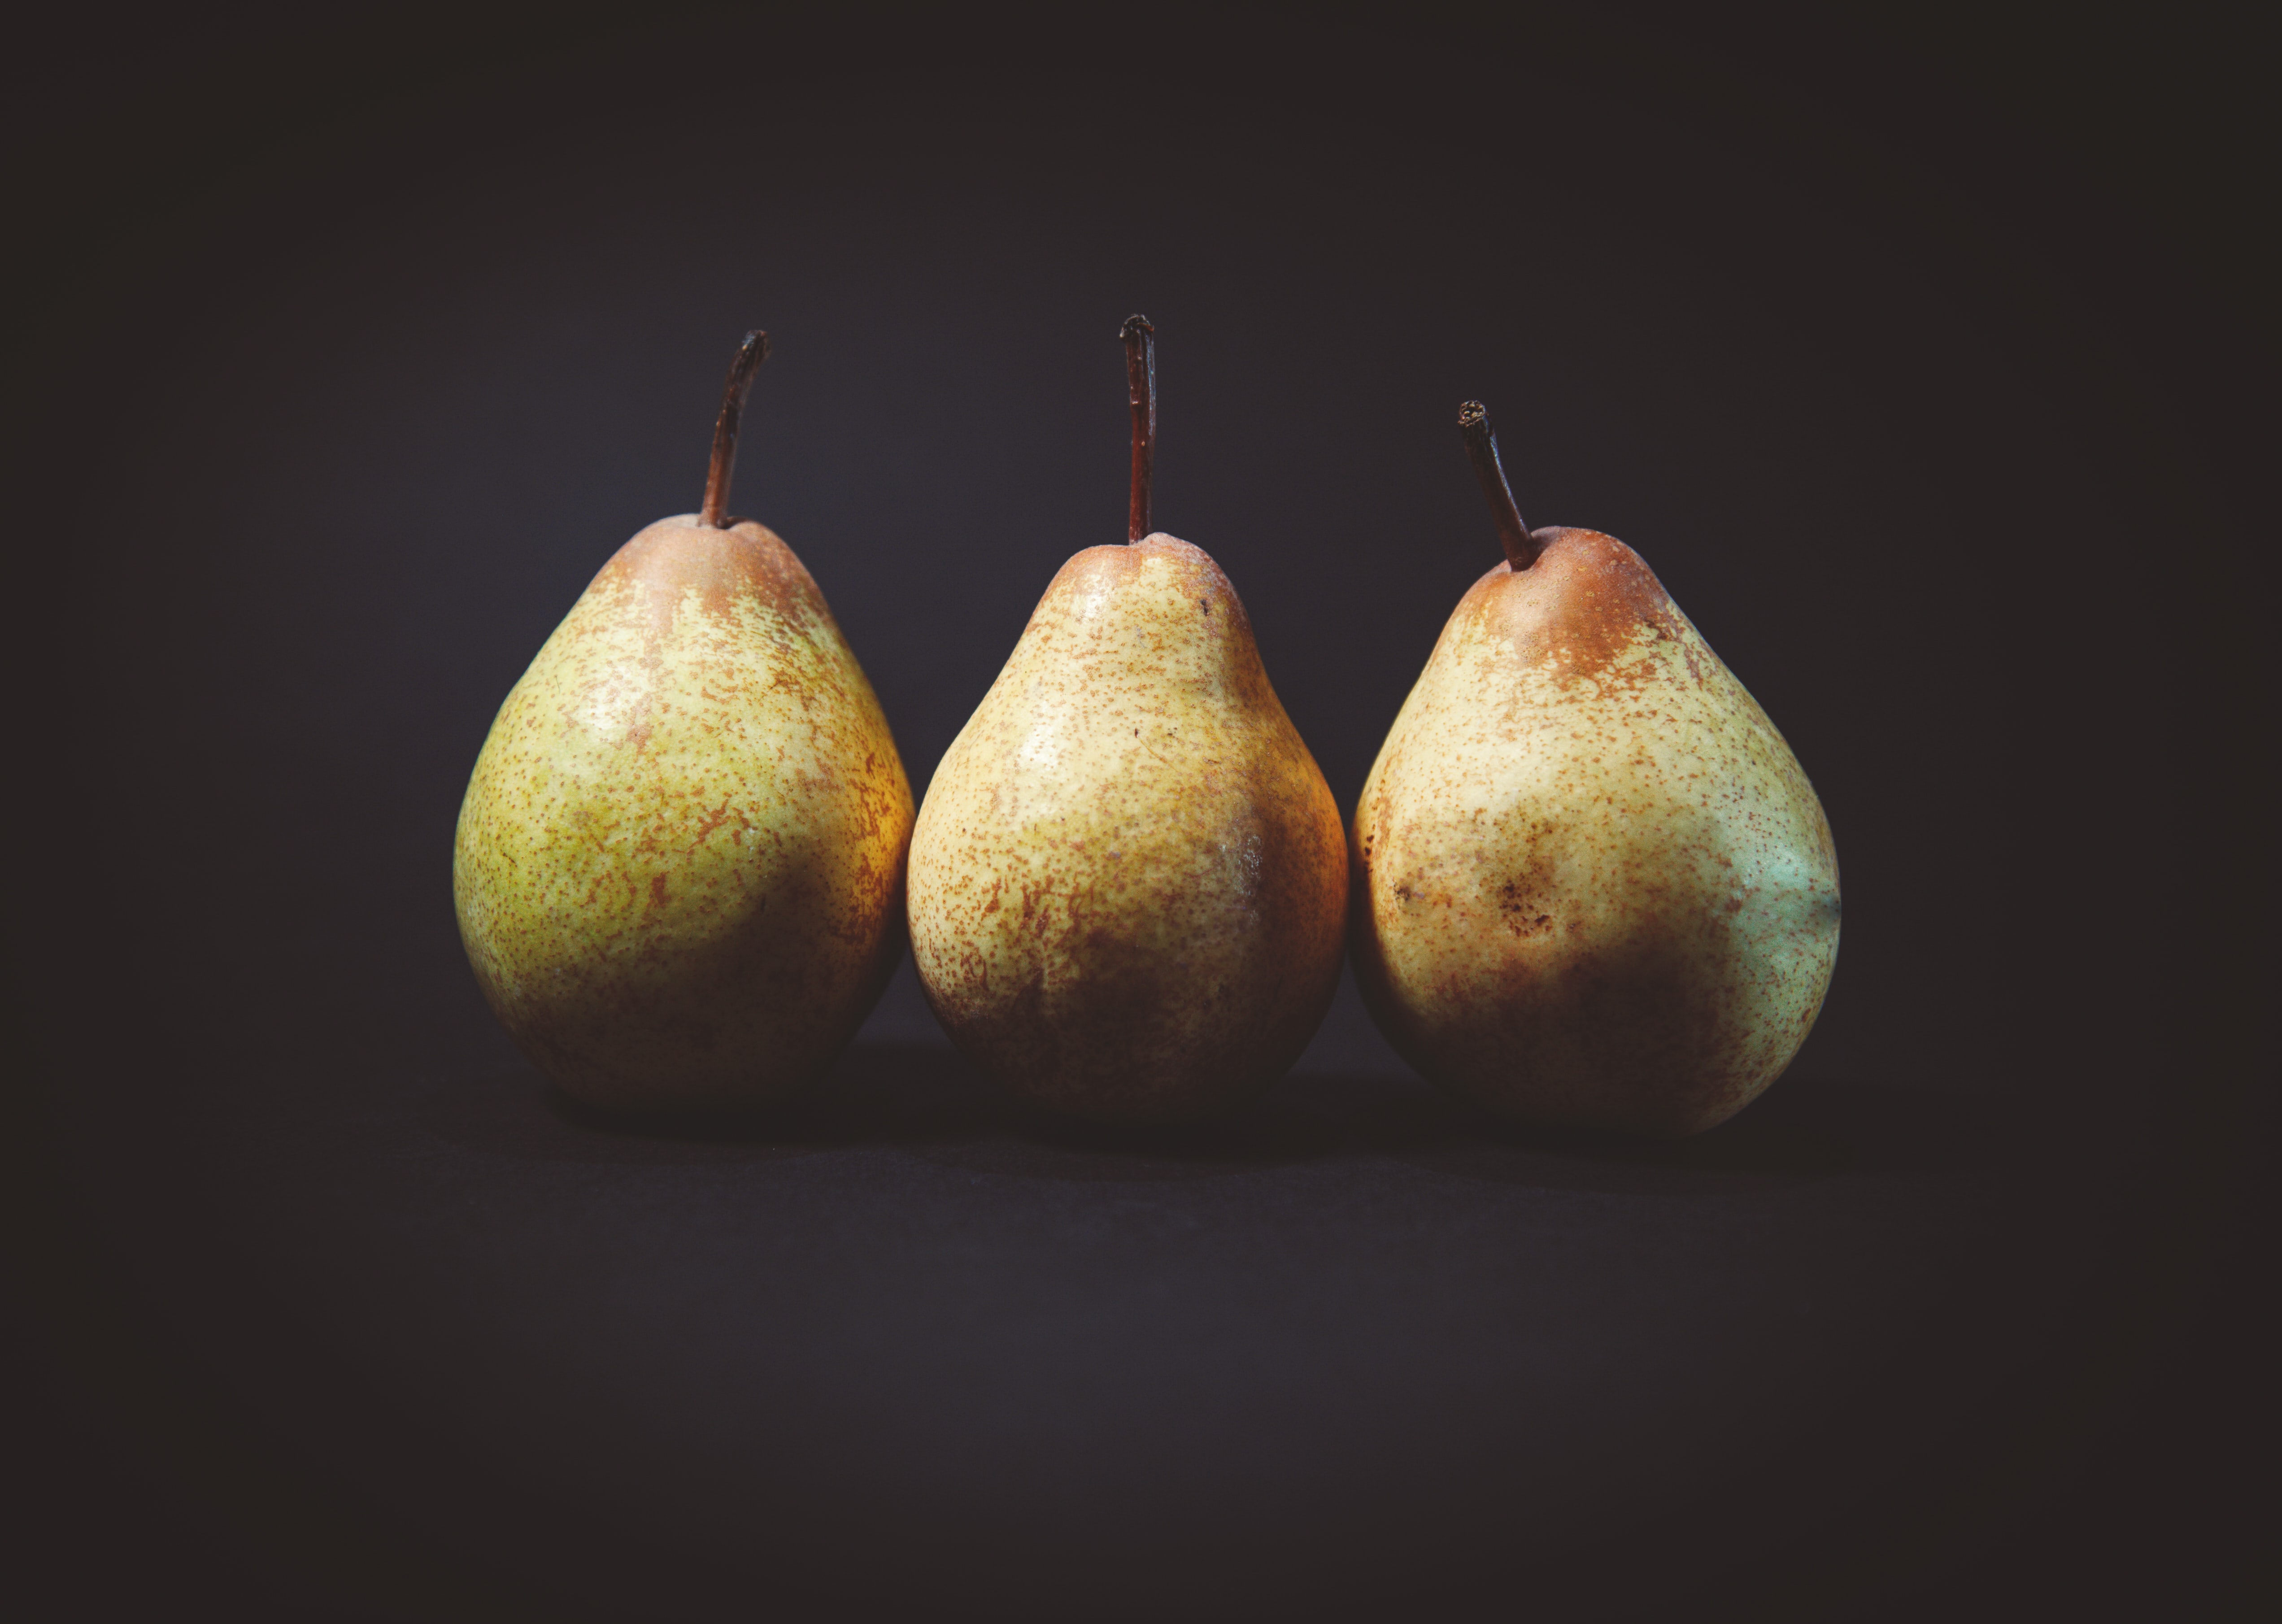 three pears on black surface